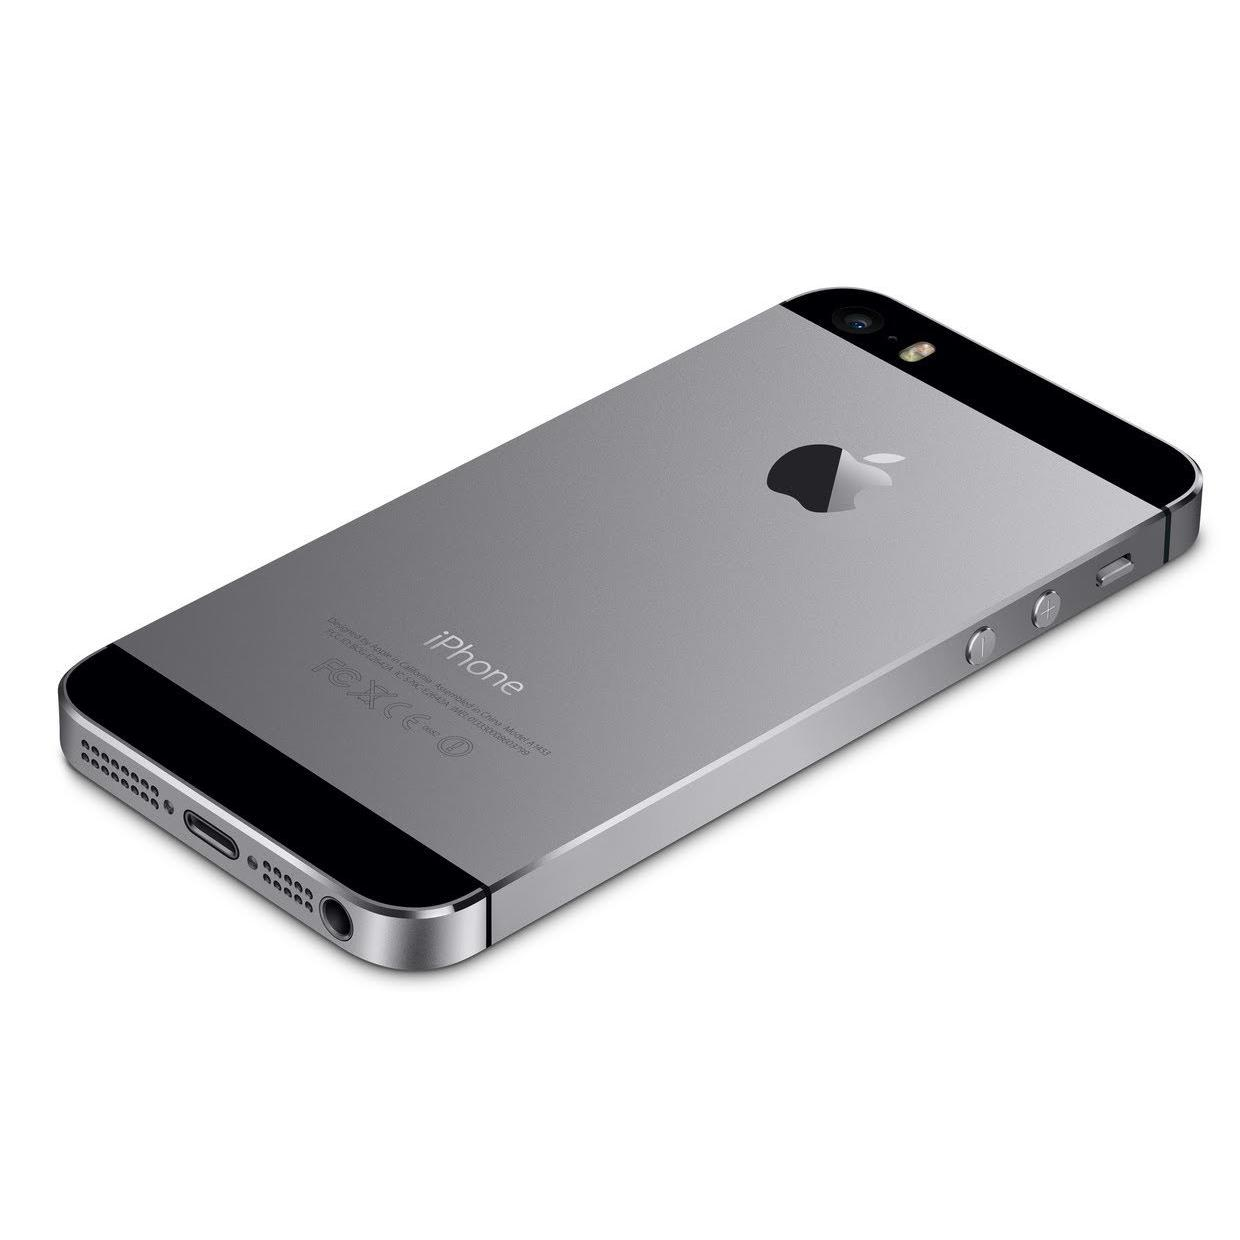 iPhone 5S 64 Gb - Gris espacial - Libre